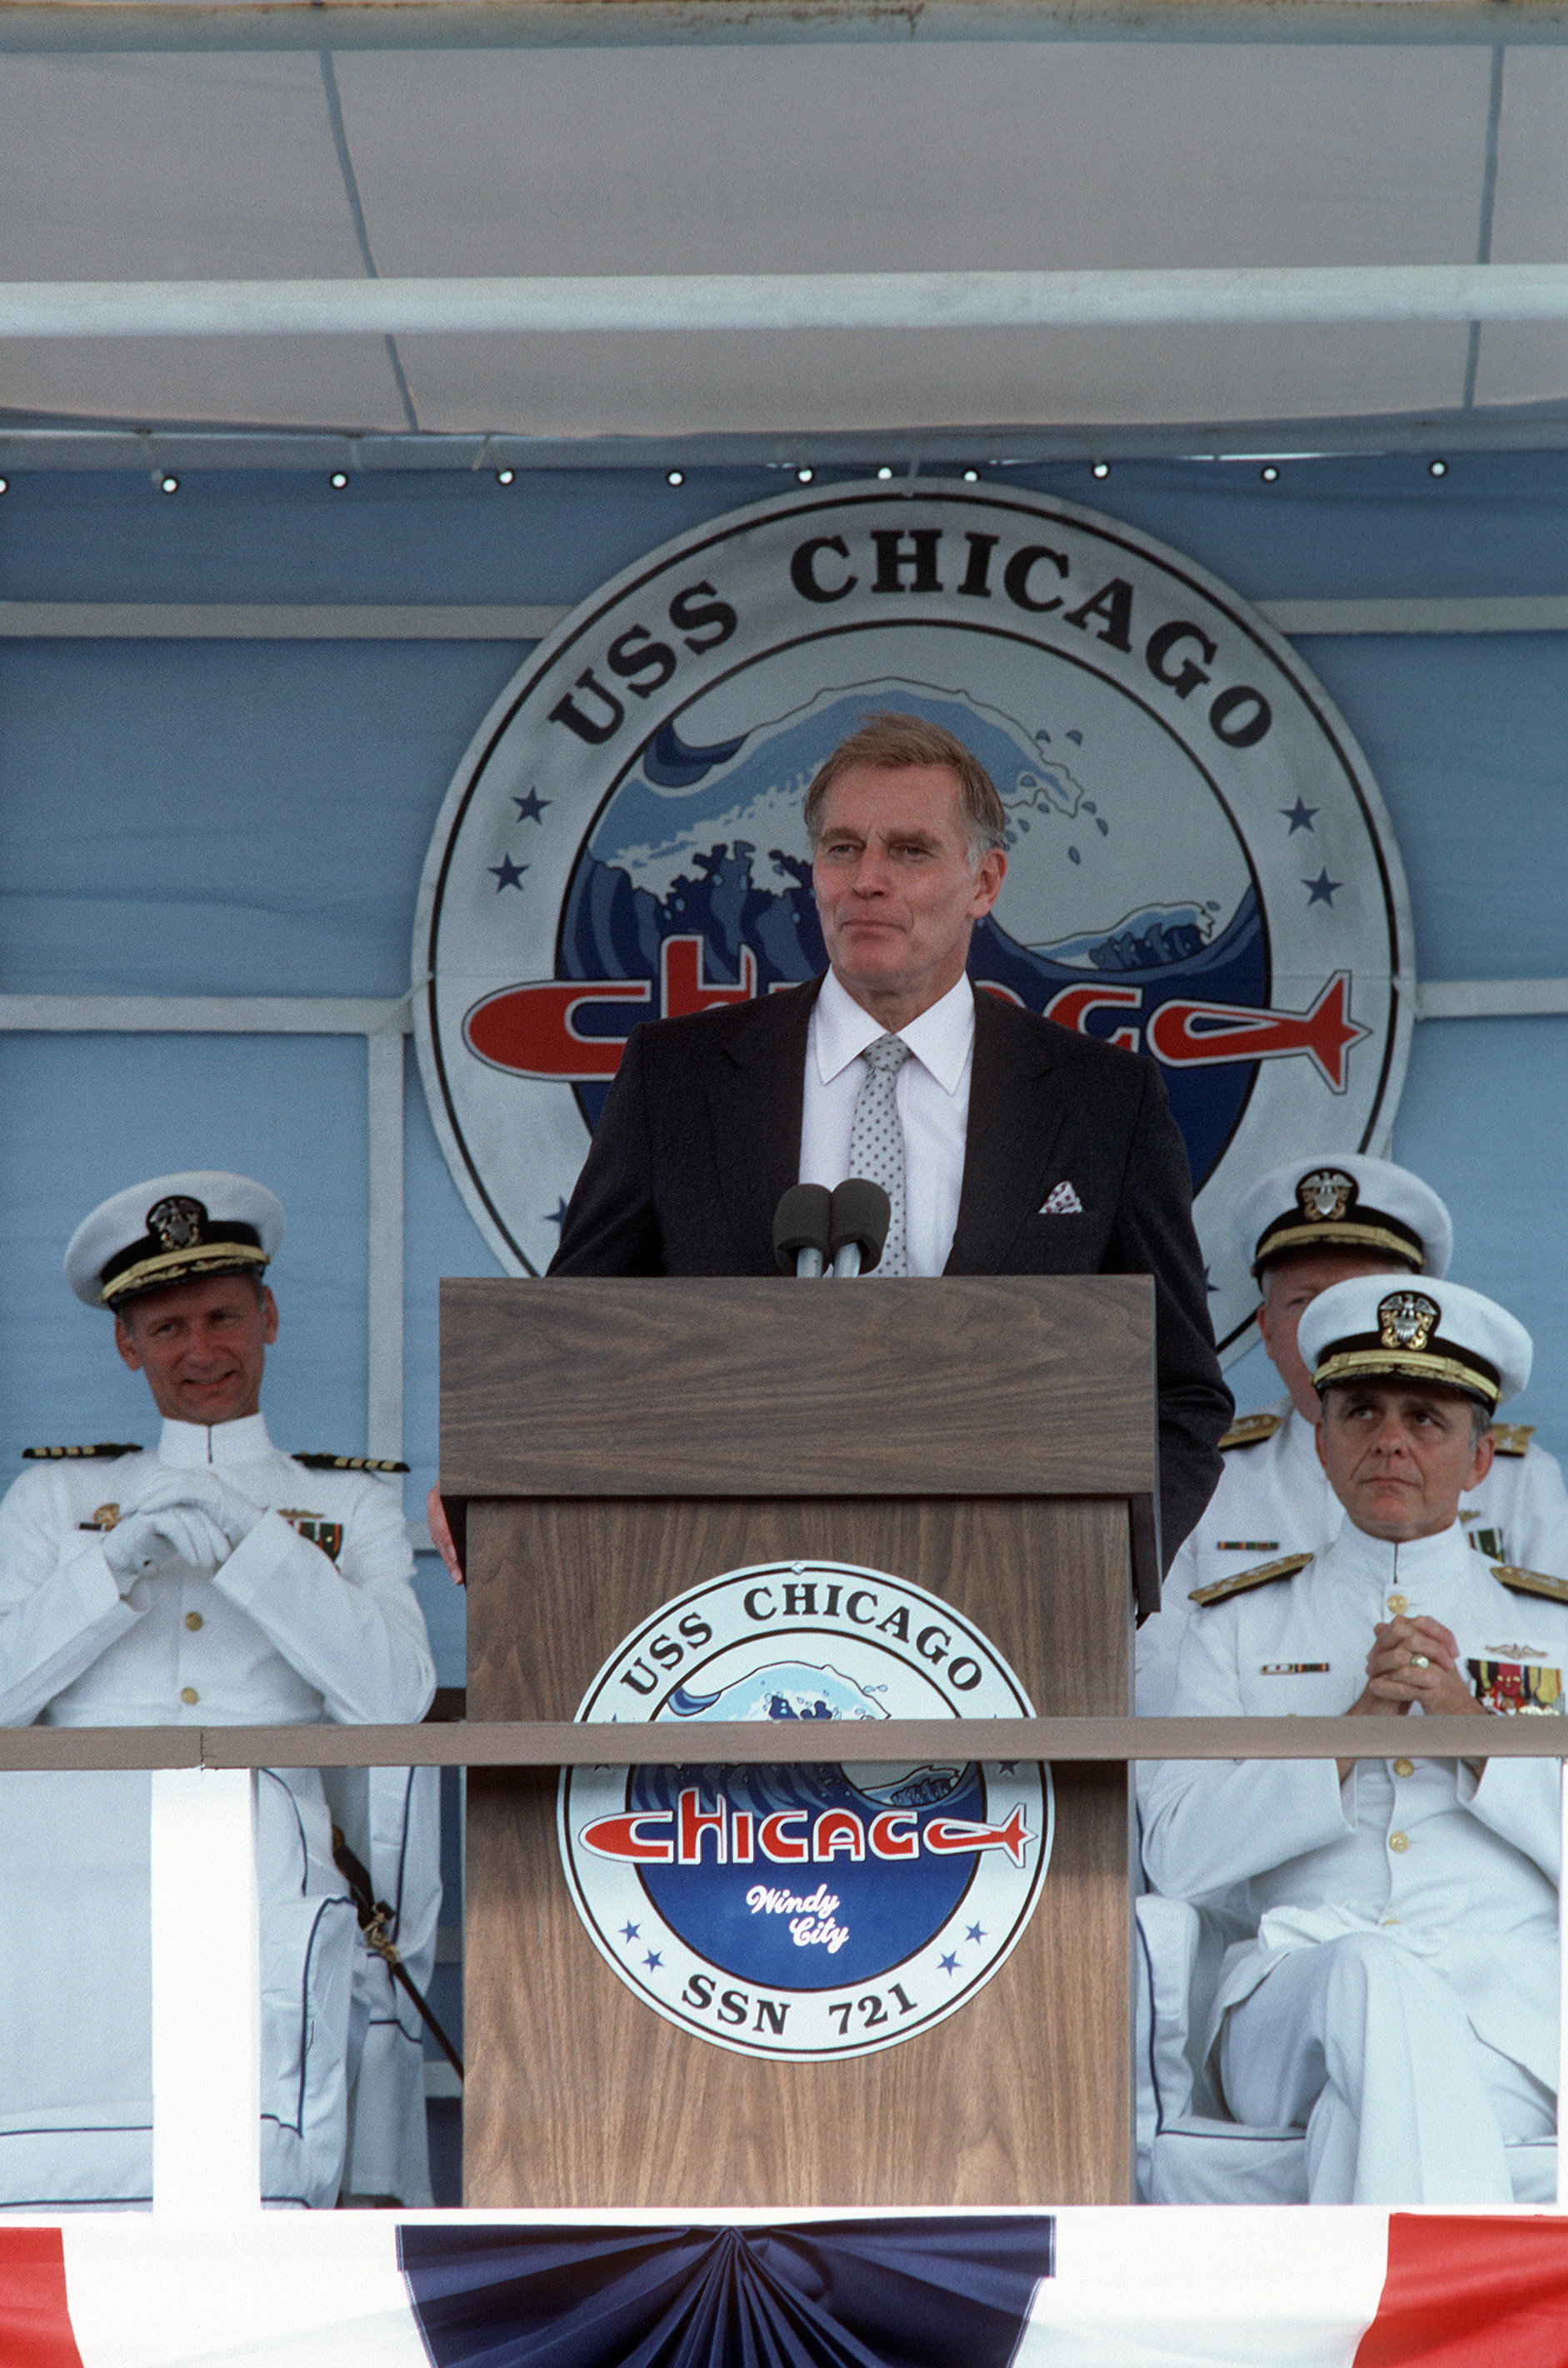 Actor Charlton Heston delivers the principal address during the commissioning of the nuclear-powered attack submarine USS CHICAGO (SSN 721)